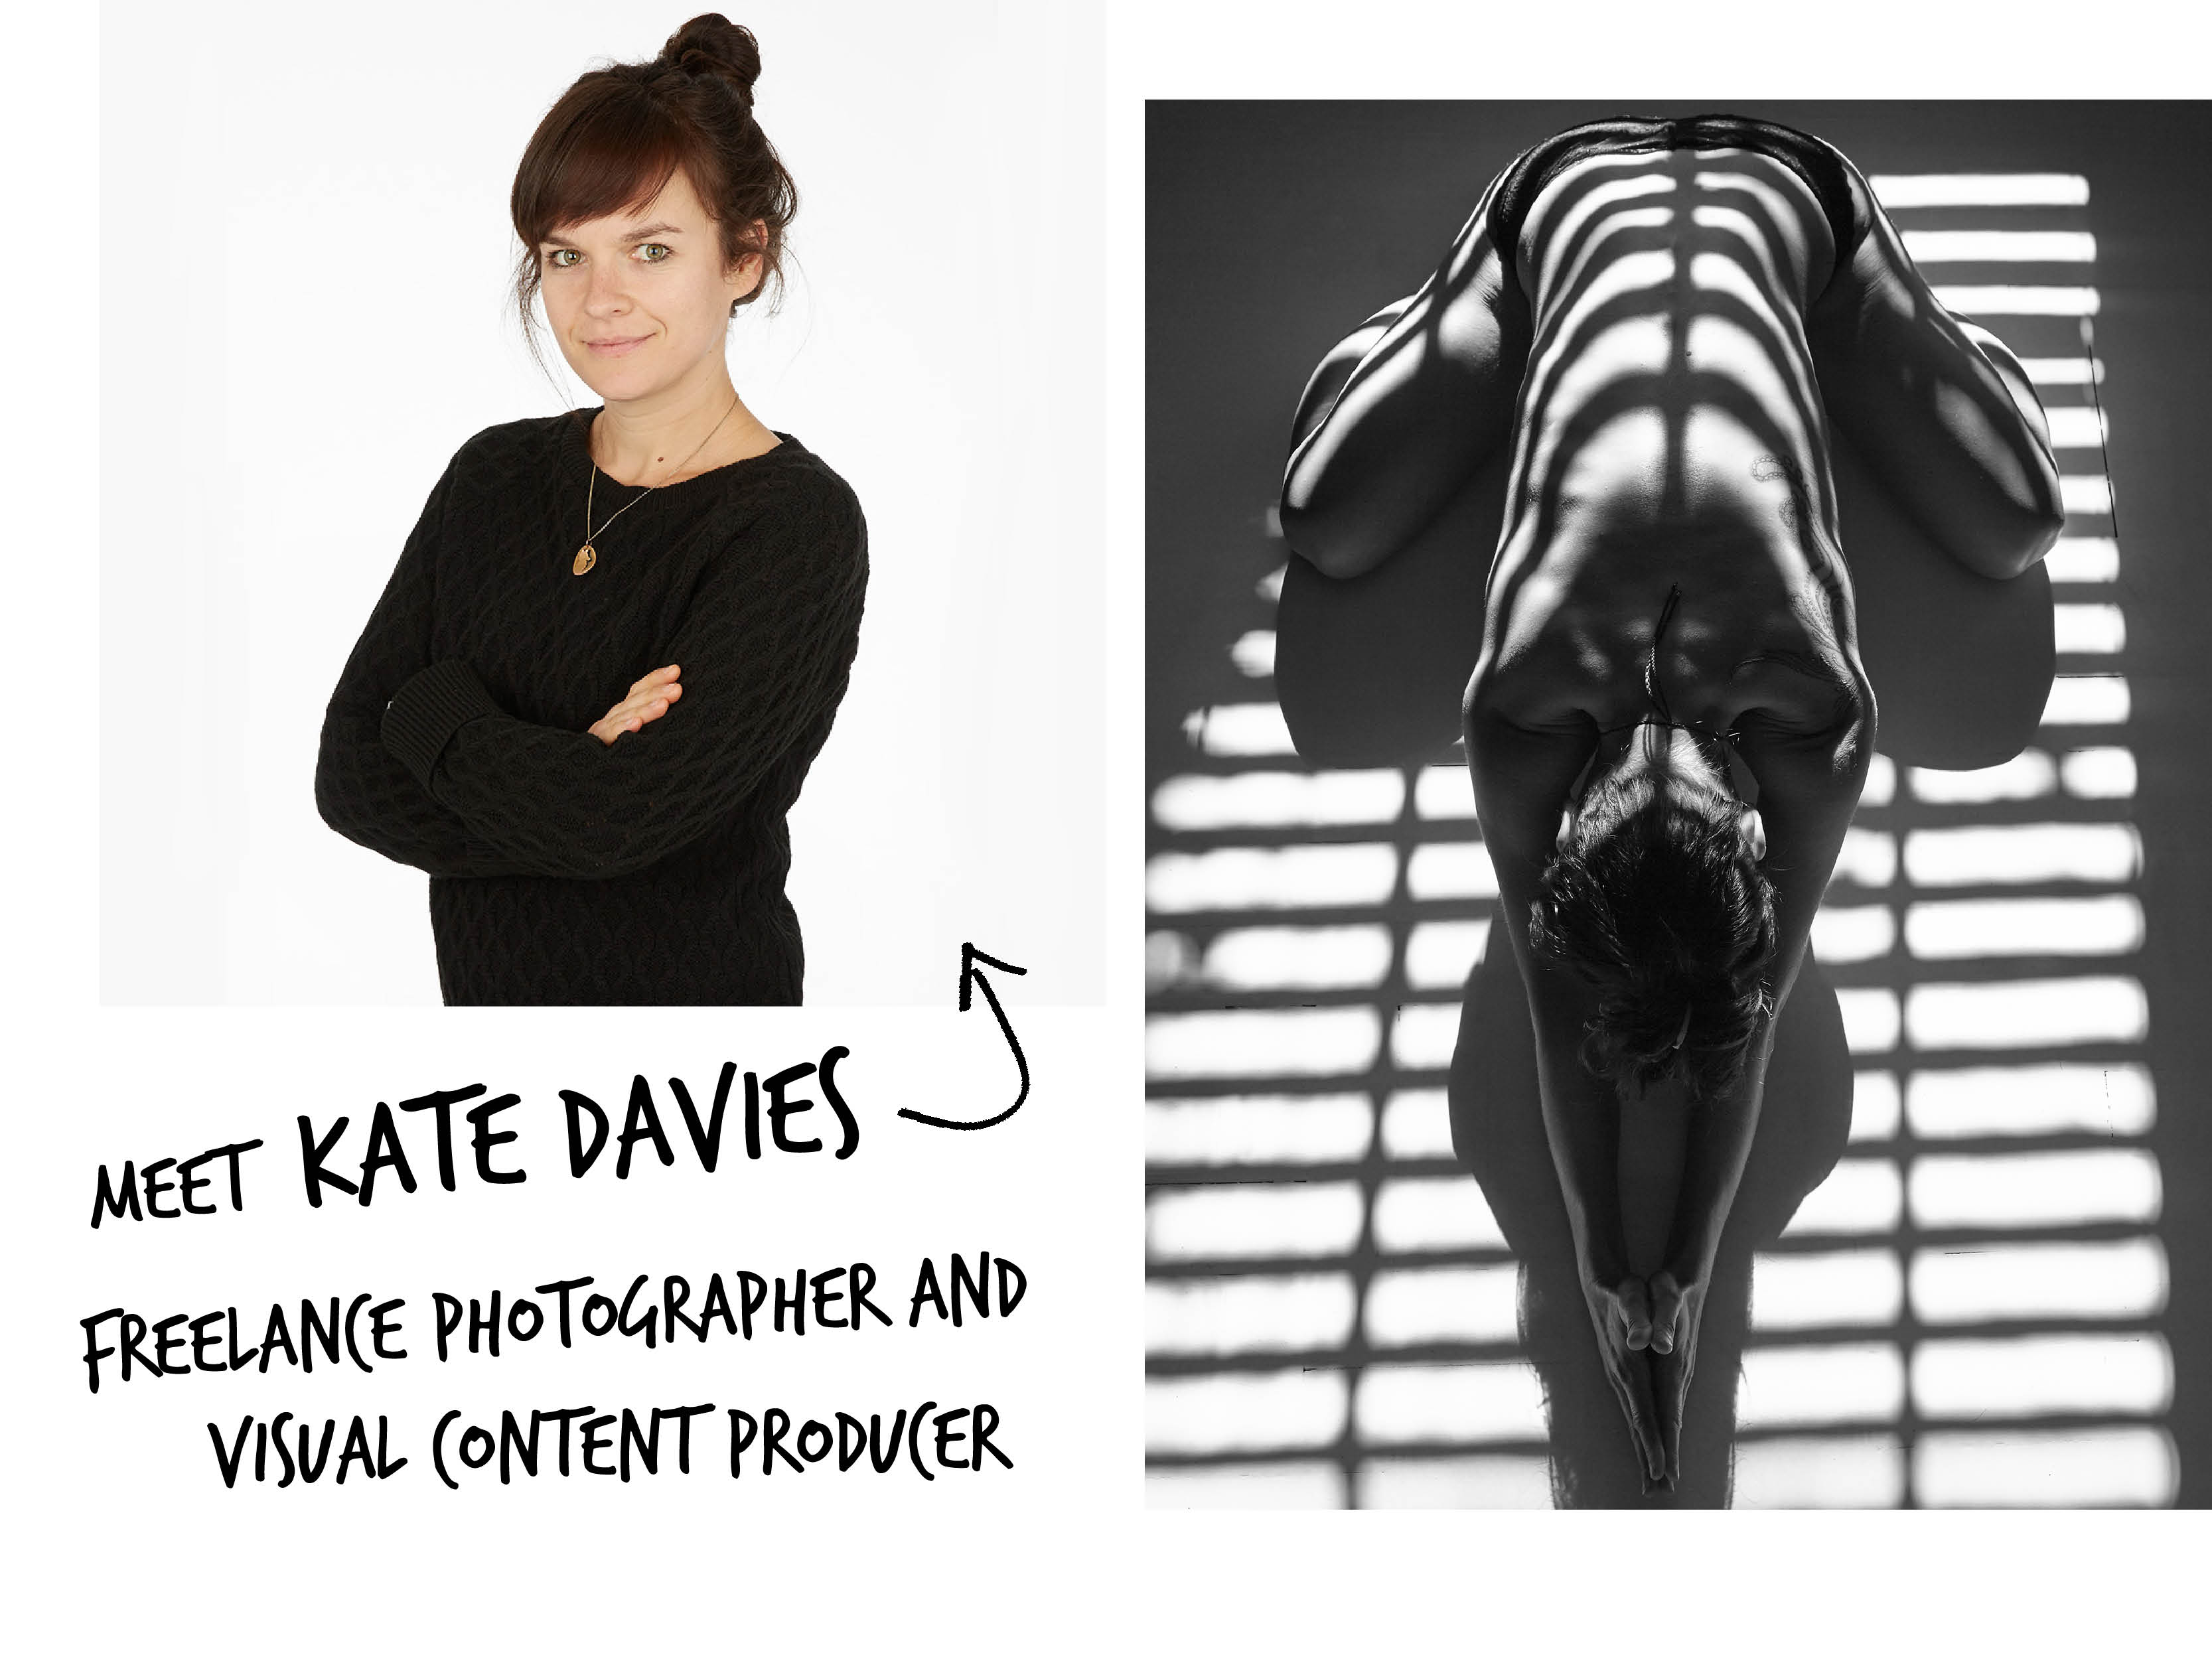 Q&A with freelance photographer Kate Davies